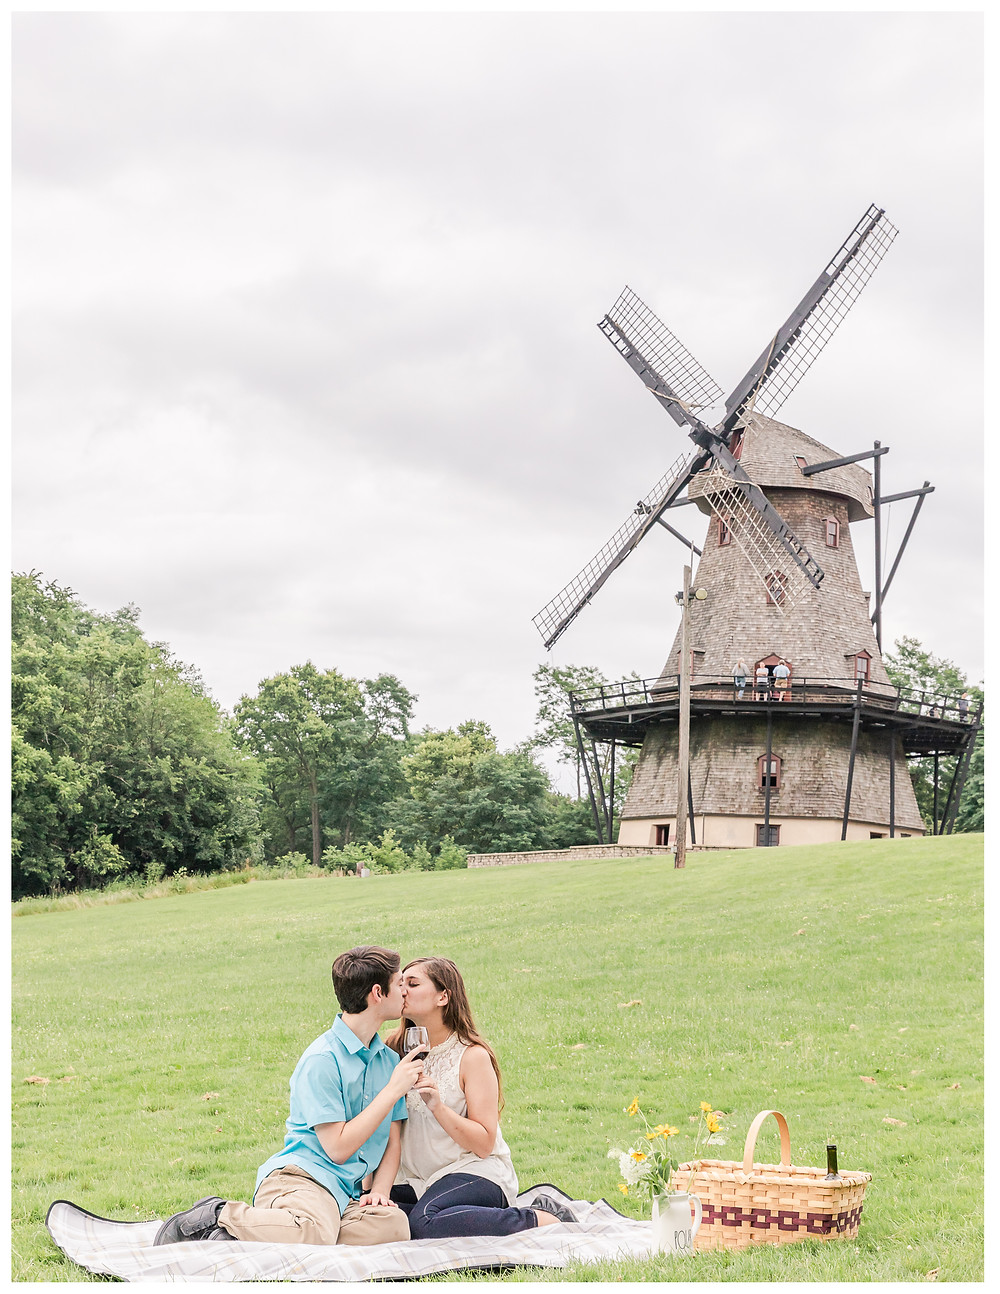 a picnic engagement session at fabyan forest preserve wind mill japanesse garde fabryan windmill fox river bridge wine red wine wineglasses